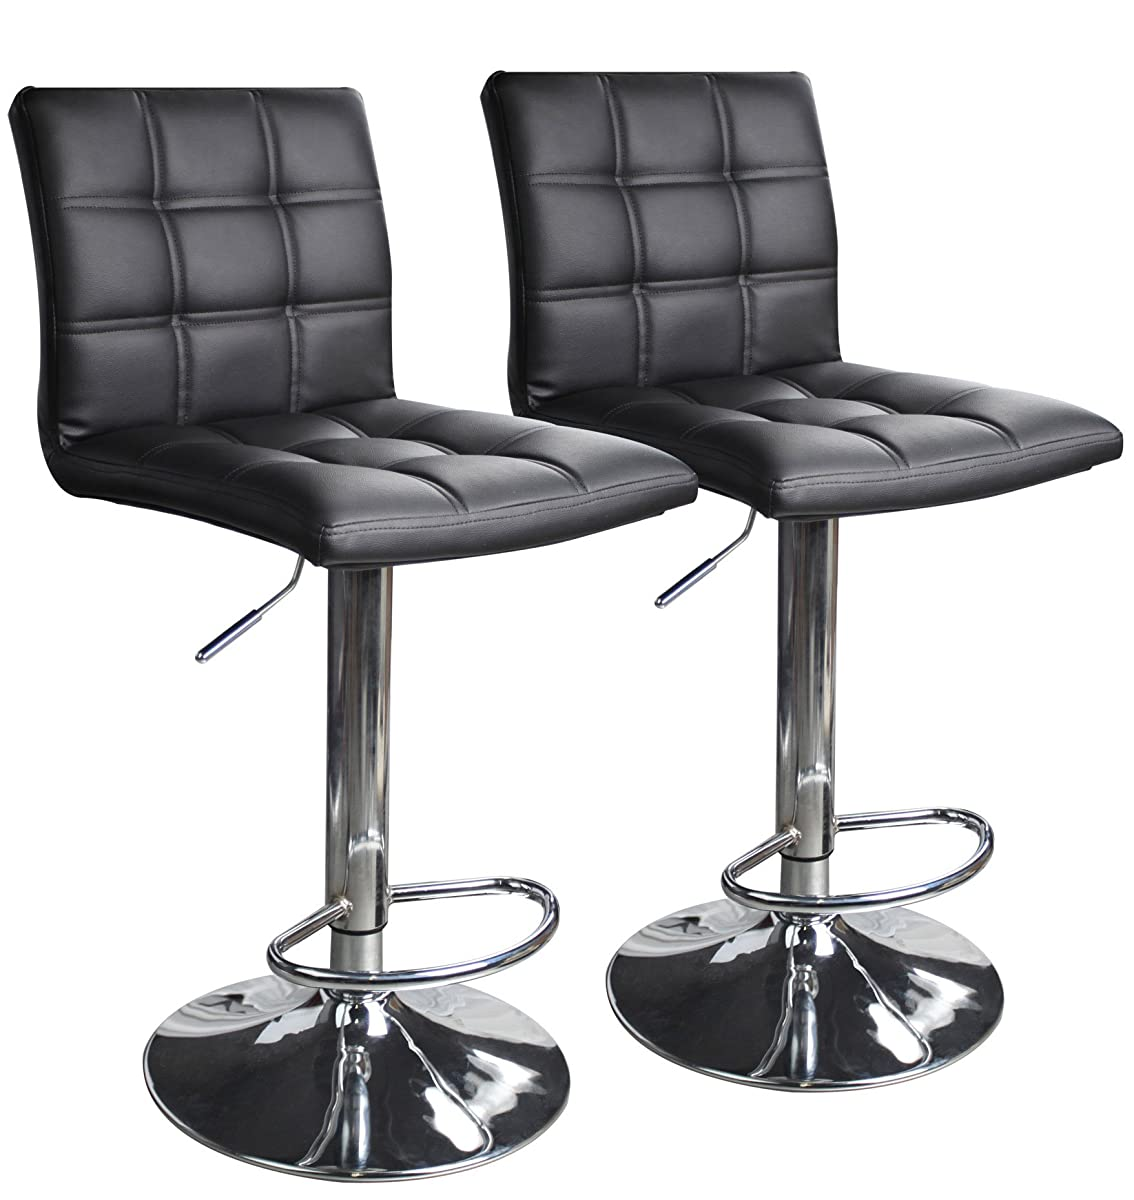 modern square leather adjustable bar stools with back set of 2 counter height swivel stool by. Black Bedroom Furniture Sets. Home Design Ideas